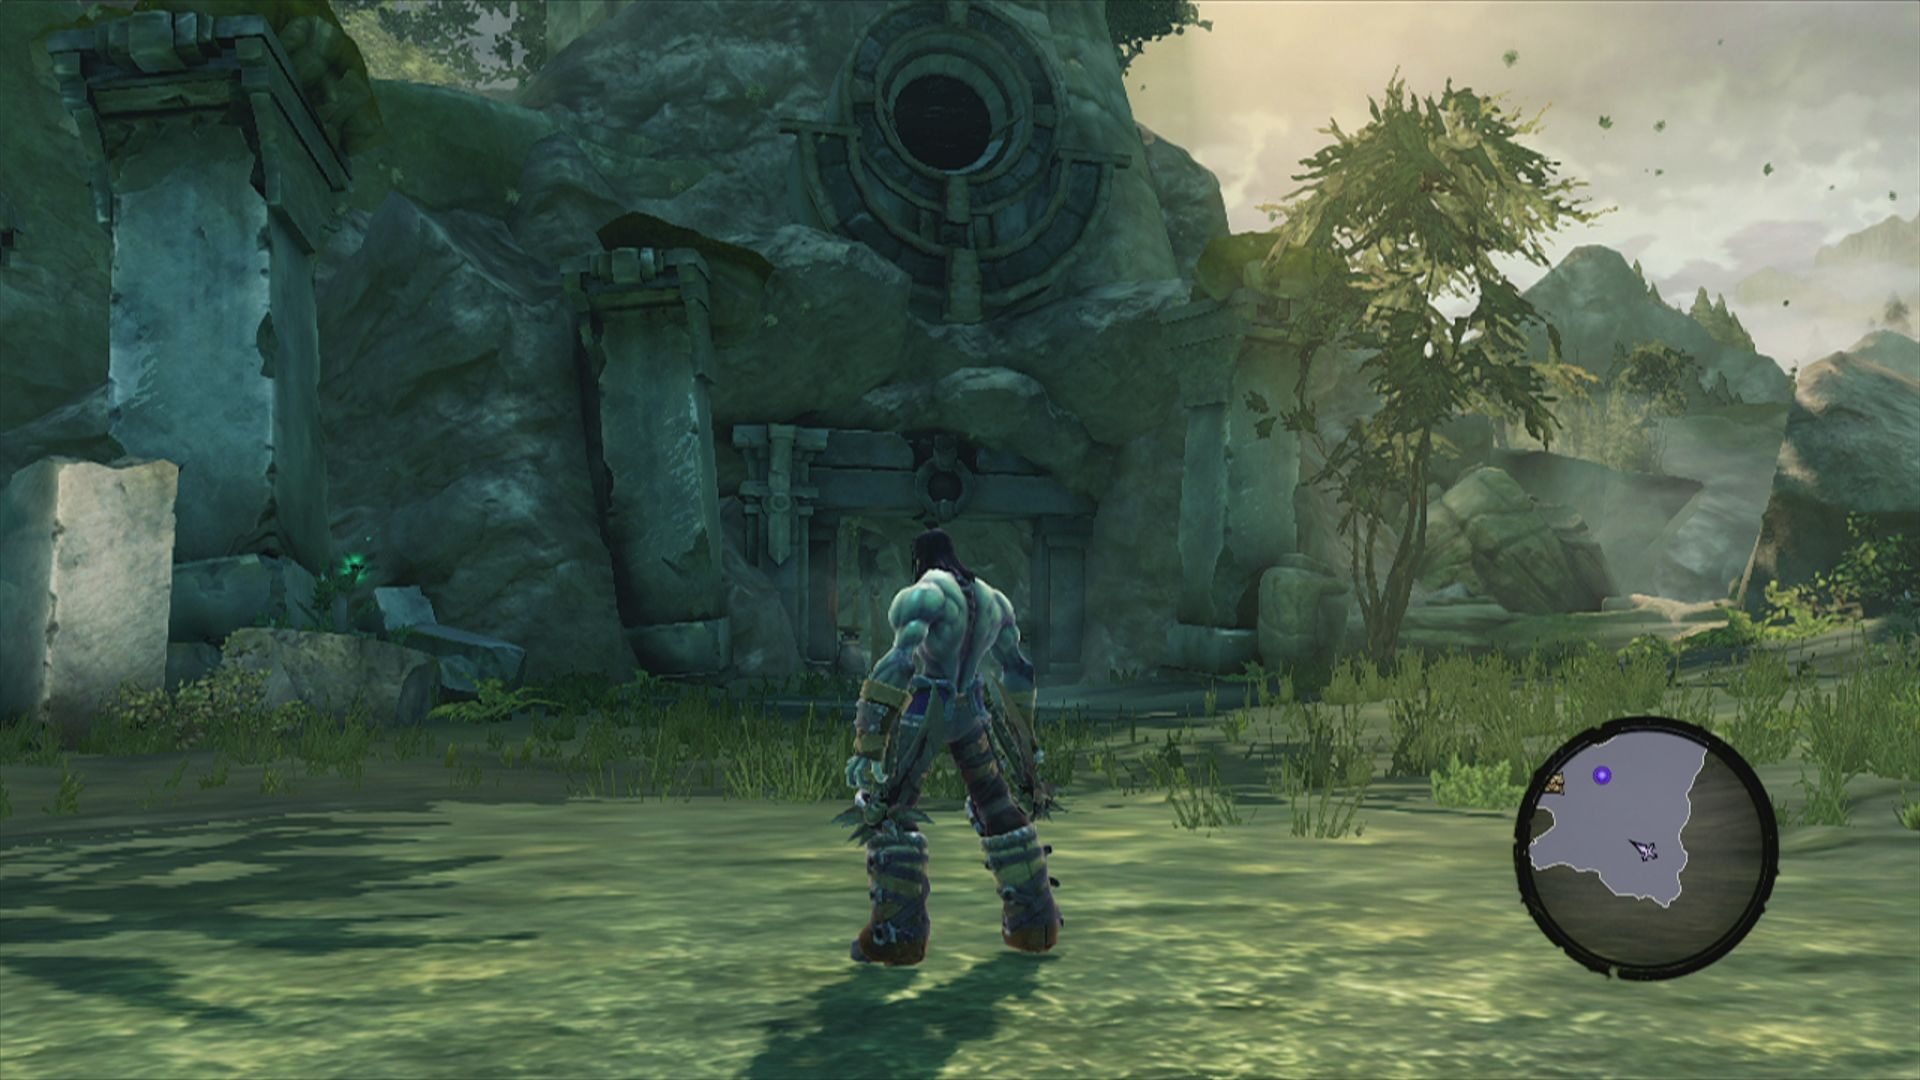 Darksiders II Xbox 360 Now the game begins for real in a different location